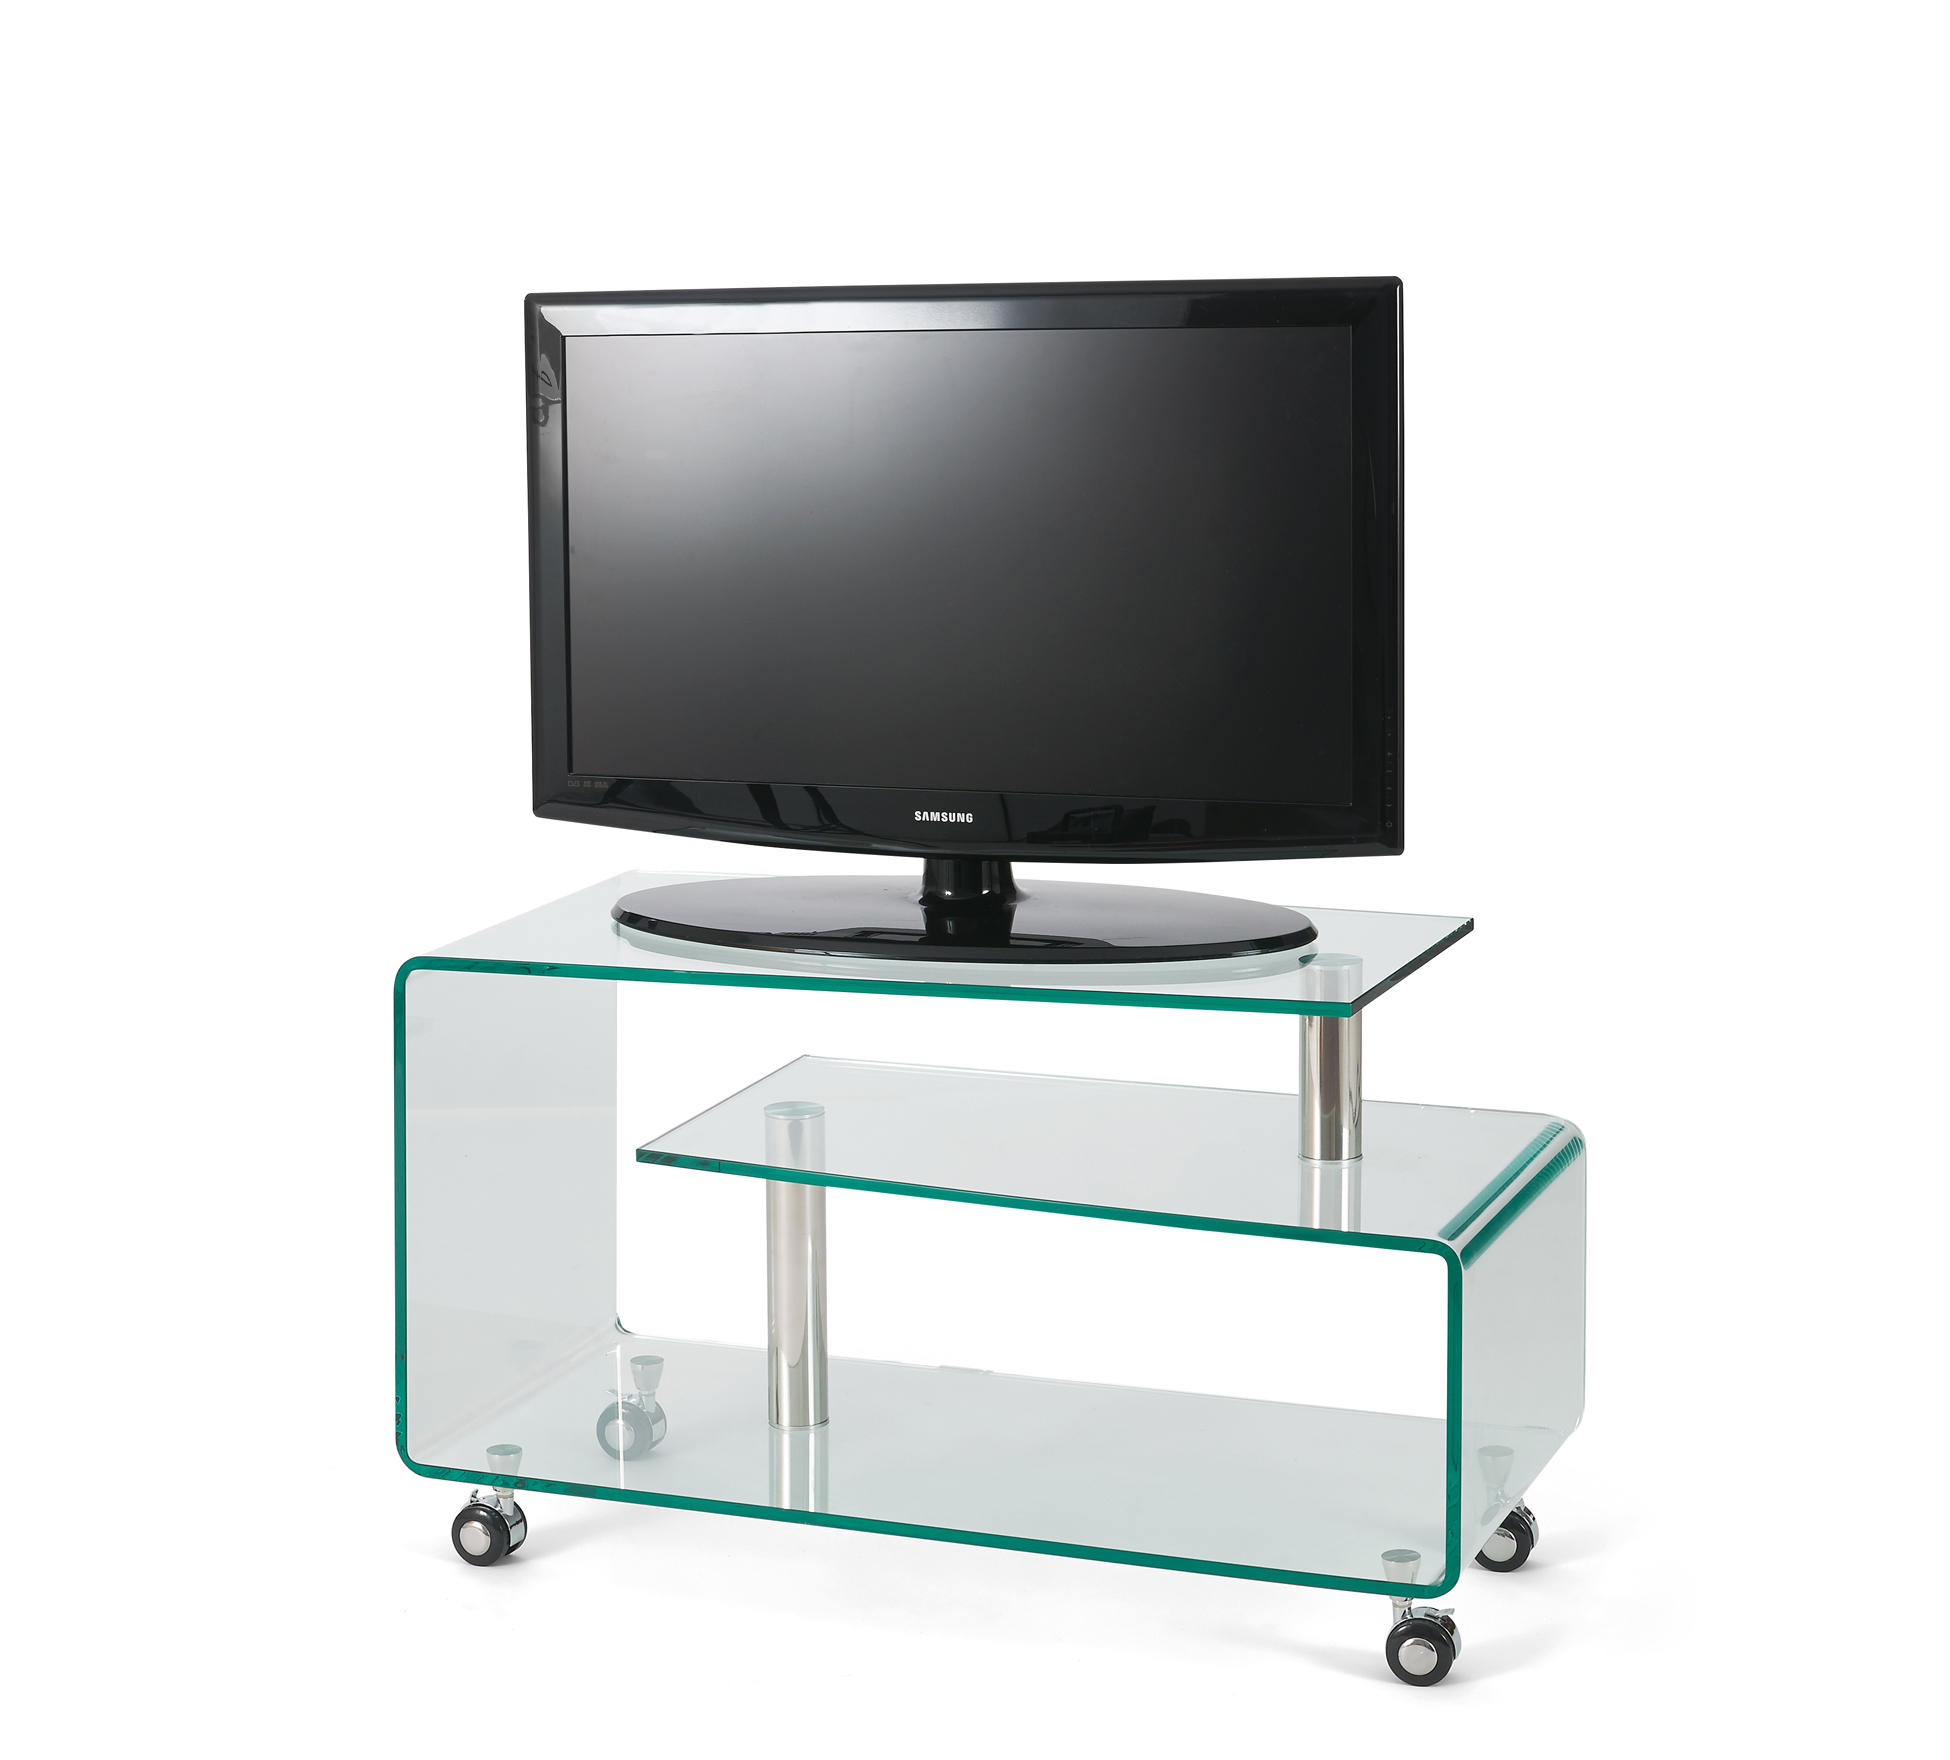 Meuble Tv En Verre But Interesting Meuble Tv Space Verre Noir  # Meuble Tv Roulettes But